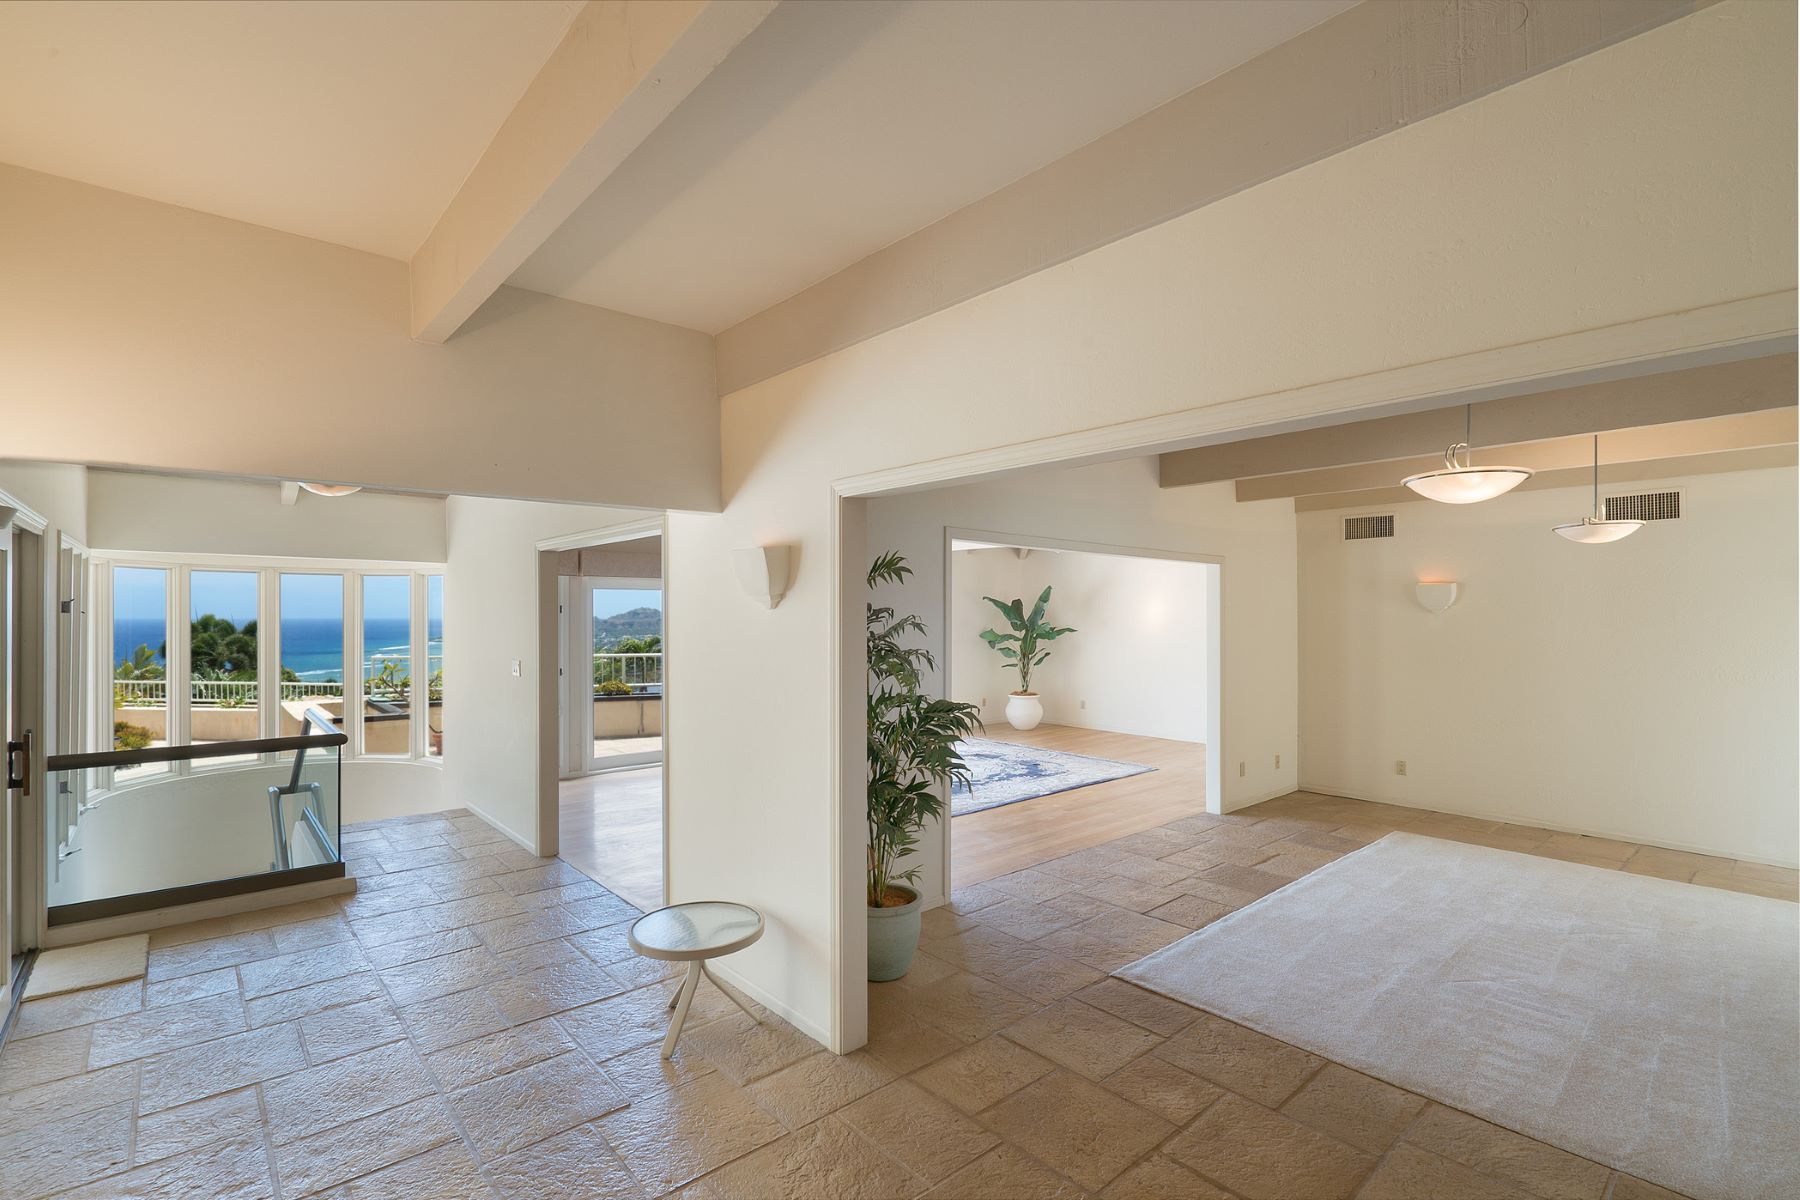 Additional photo for property listing at Unrivaled Panoramic Views 644 Kahiau Loop Honolulu, Hawaii 96821 United States